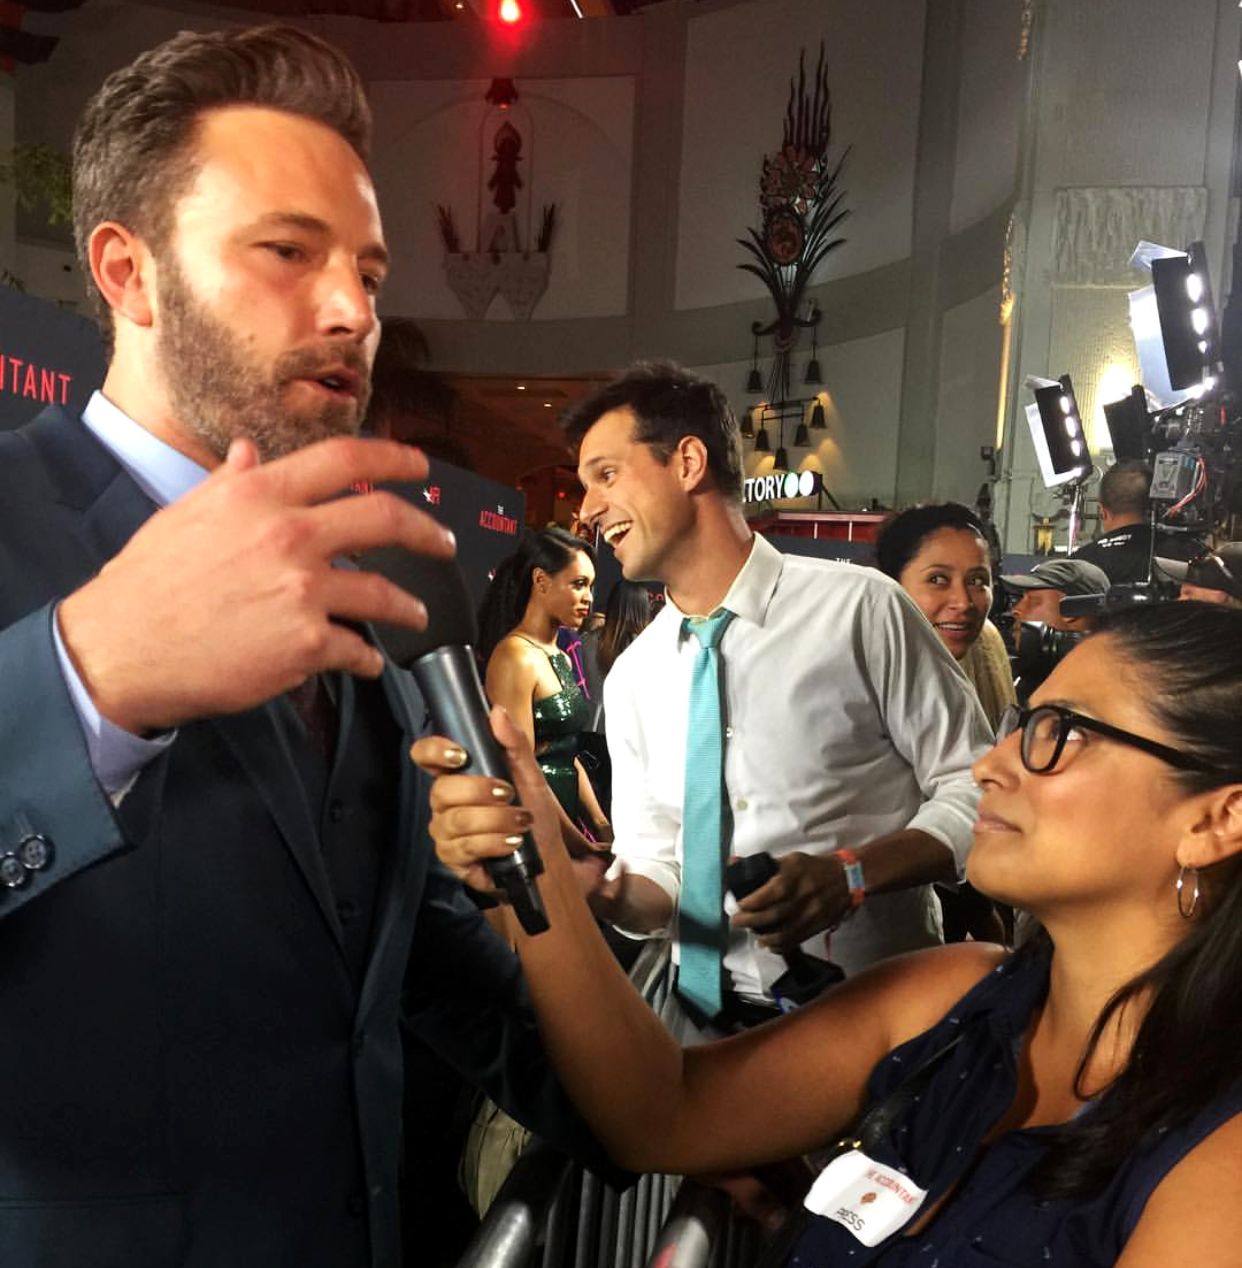 the-accountant-movie-premiere-ben-affleck